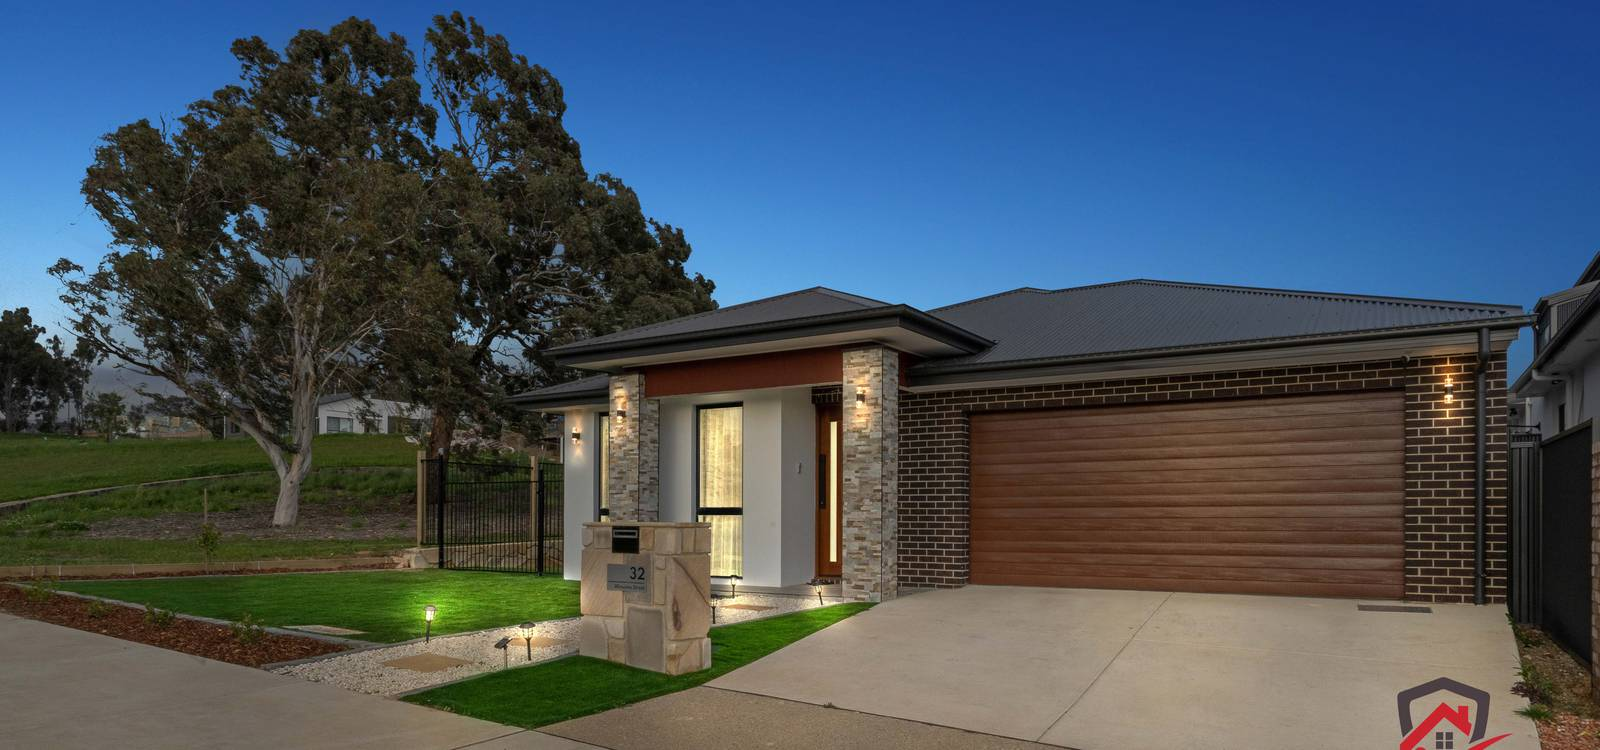 32 Winsome Street TAYLOR, ACT 2913 - photo 1